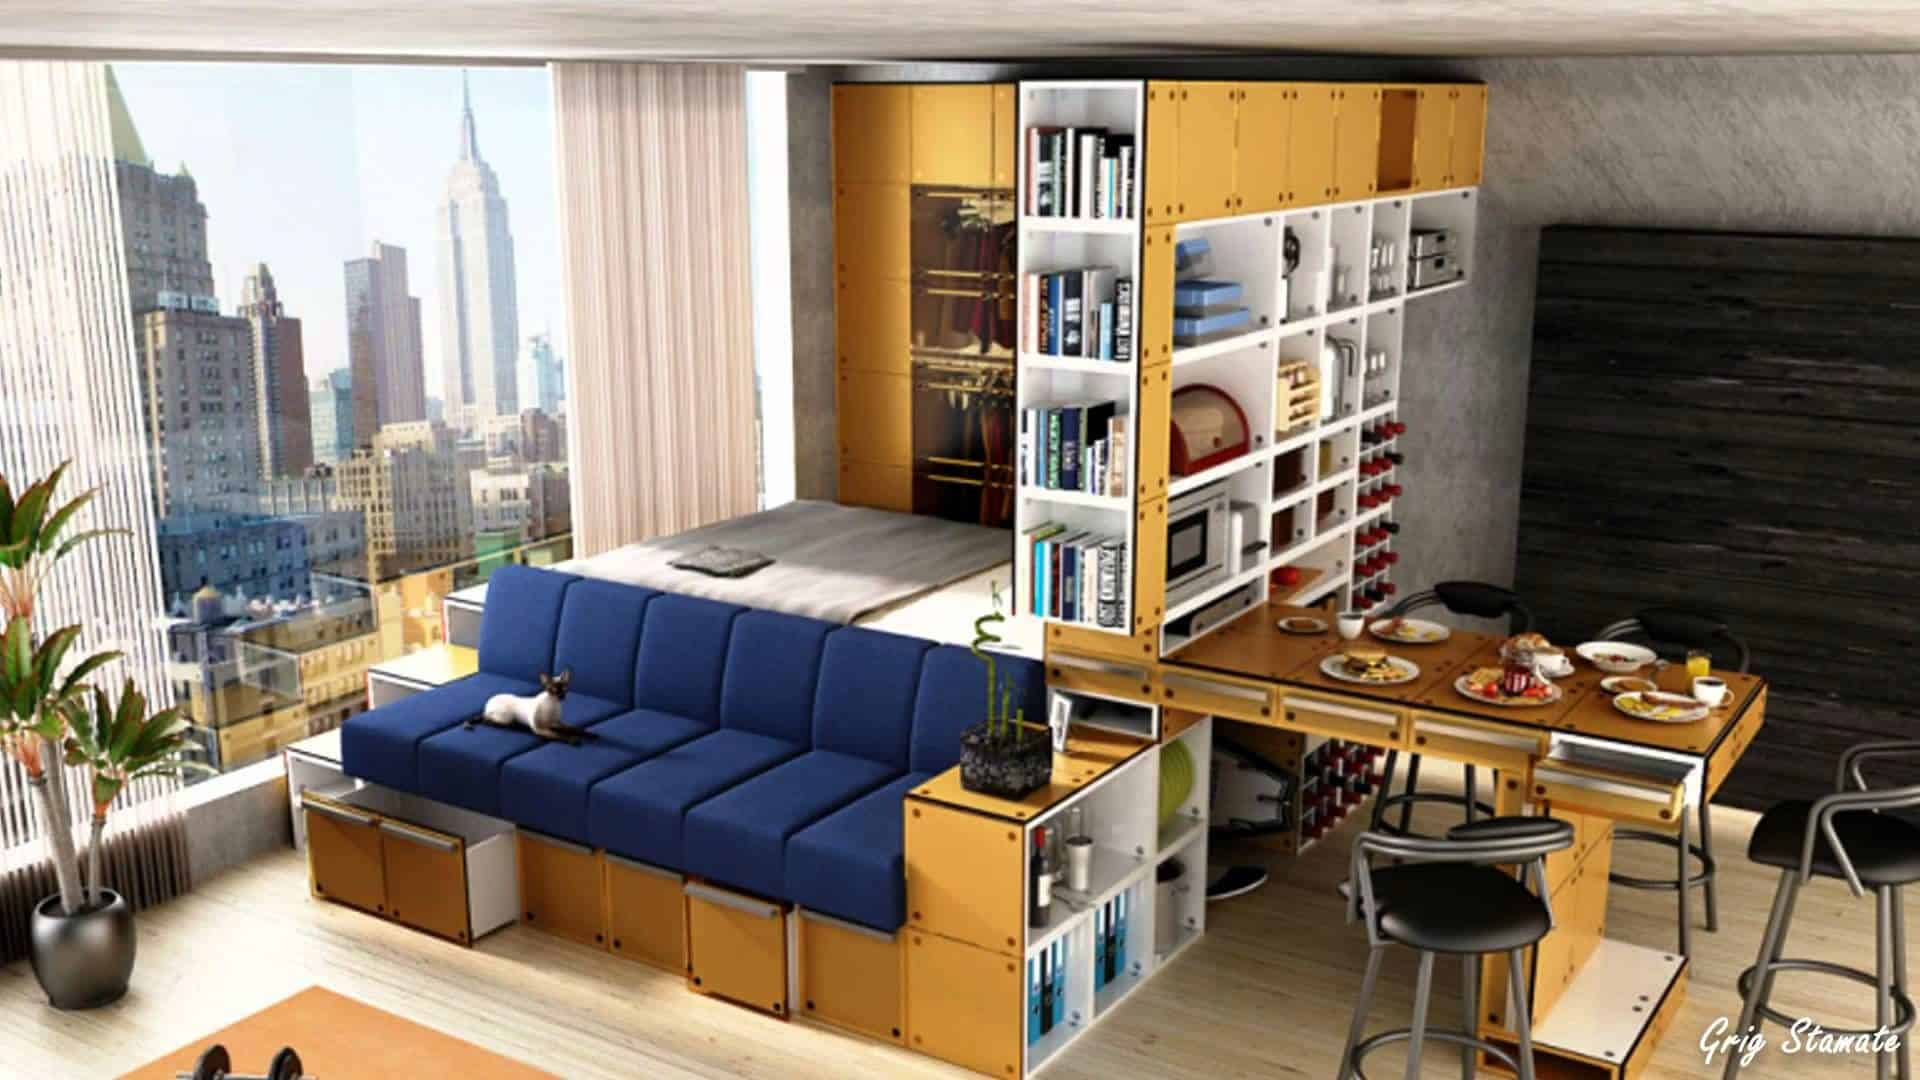 Top 5 Best Ideas for Turning Your Living Room into a Bedroom